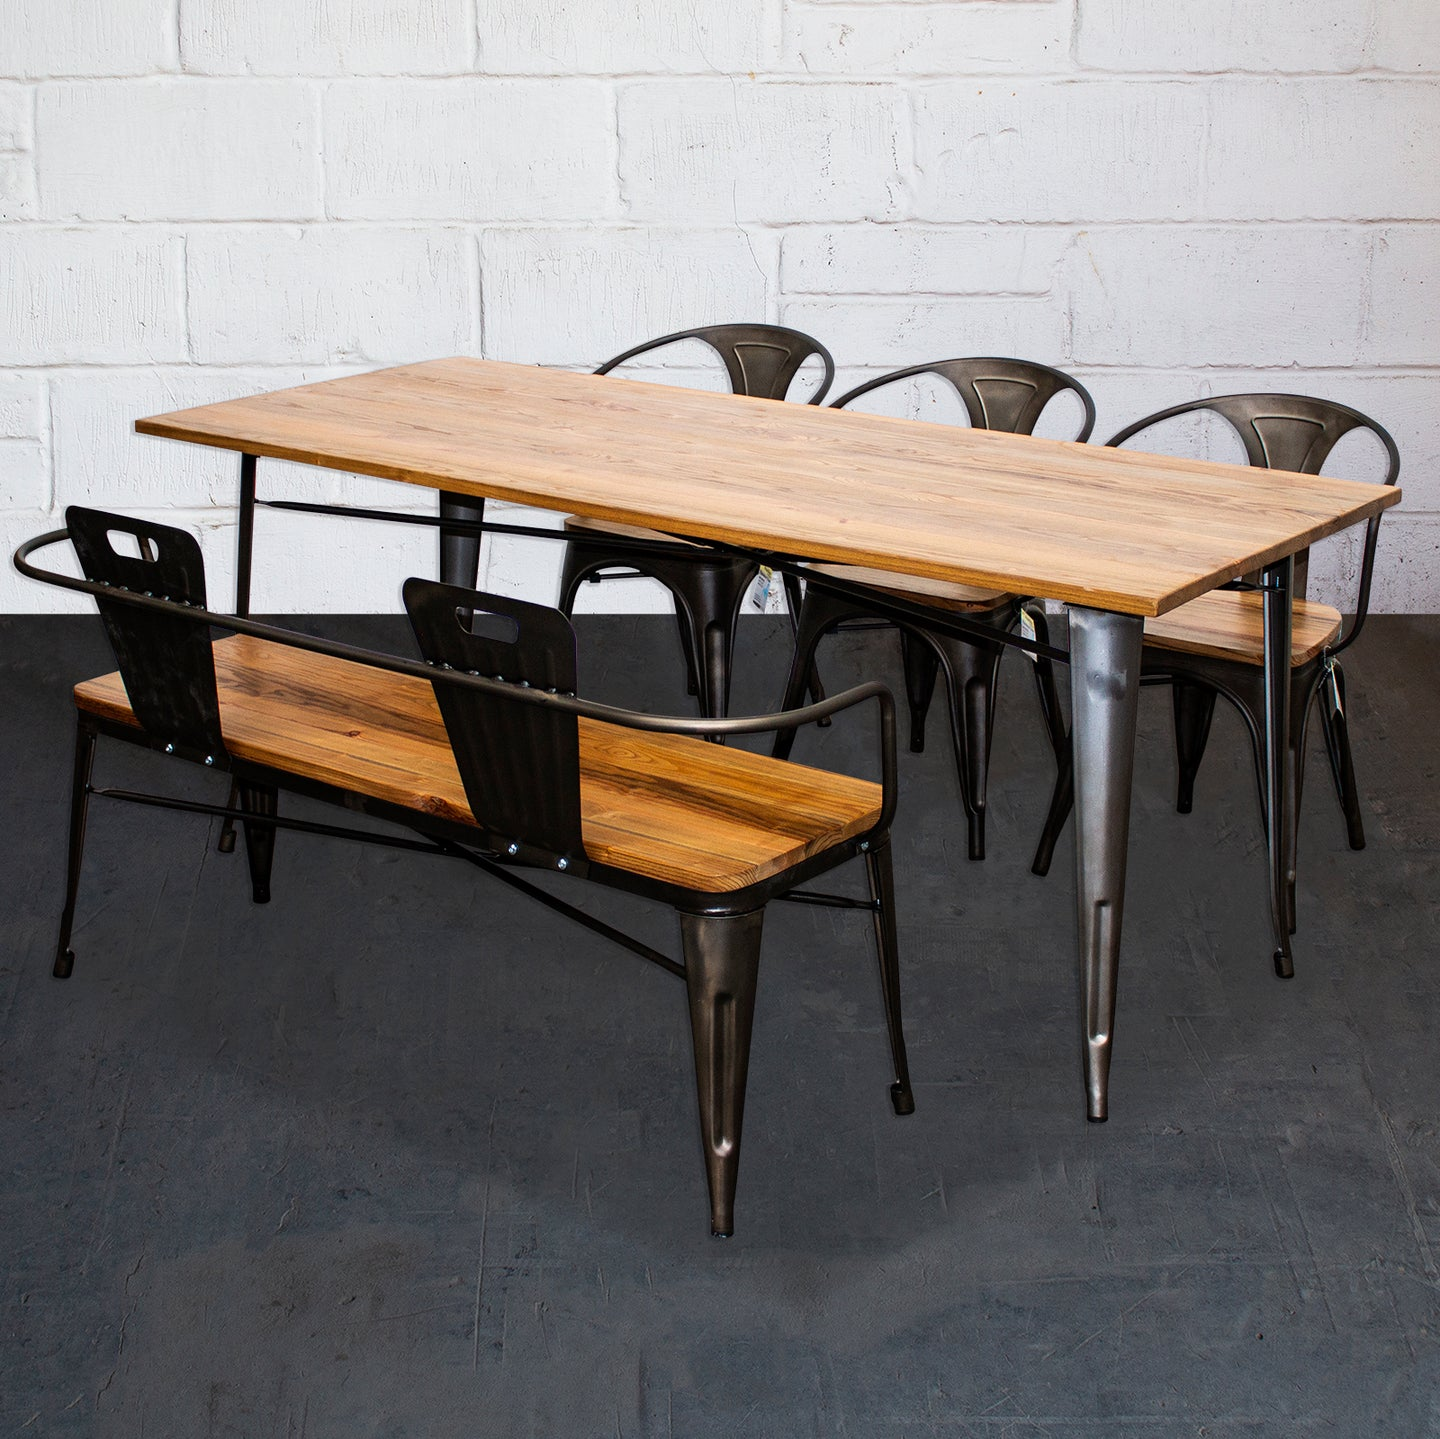 5PC Taranto Table, 3 Florence Chairs & Nuoro Bench Set - Gun Metal Grey